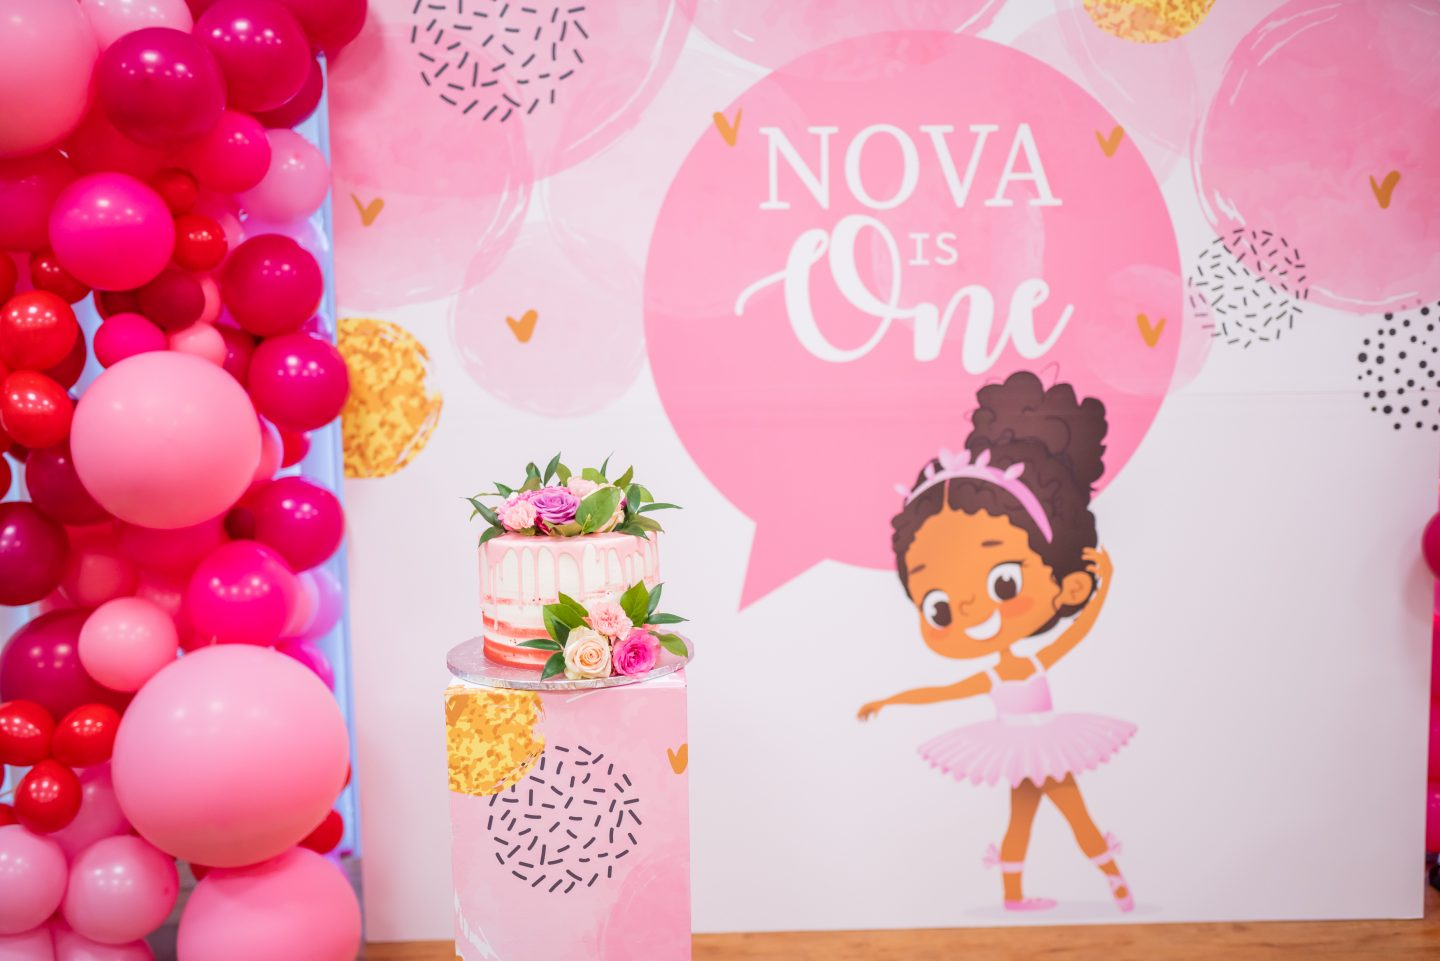 stella-adewunmi-of-jadore-fashion-blog-shares-how-to-plan-a-toddlers-valentines-day-birthday